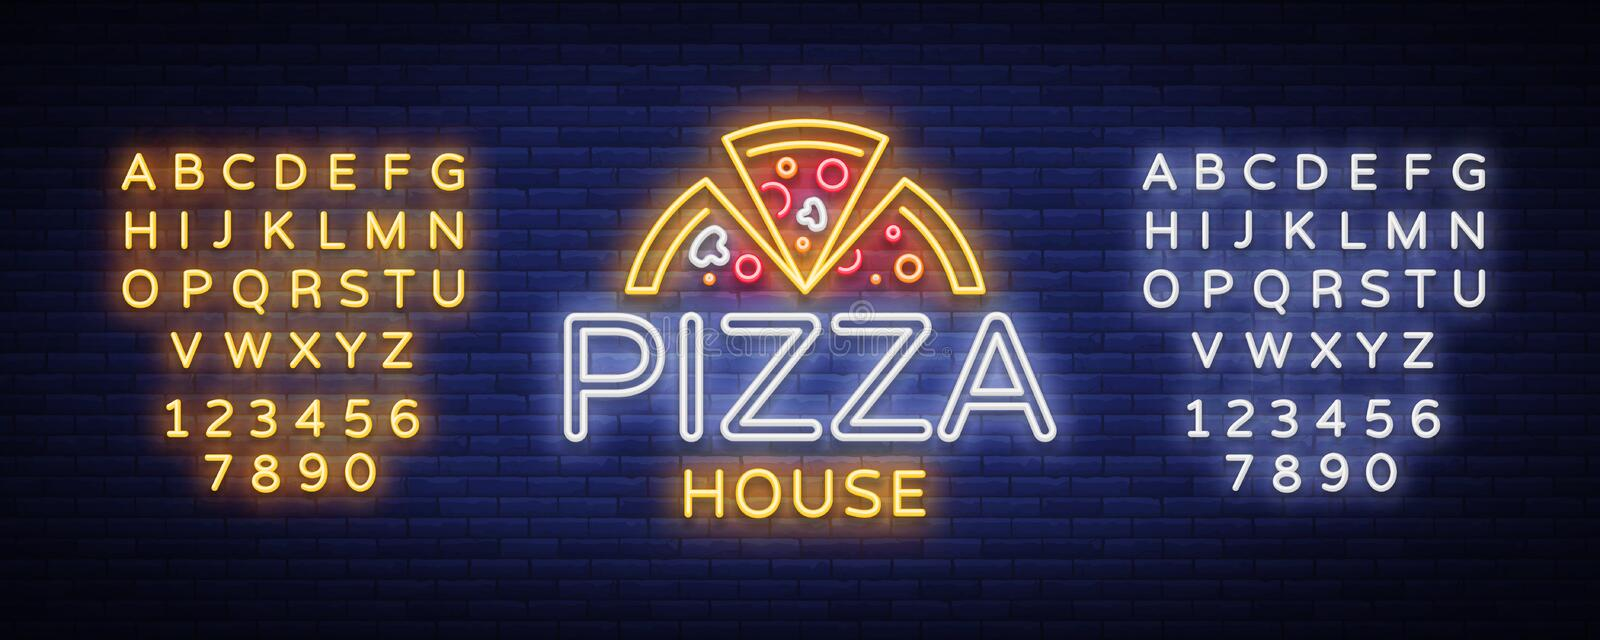 Pizza logo emblem neon sign. Logo in neon style, bright neon sign with Italian food promotion, pizzeria, snack, cafe stock illustration